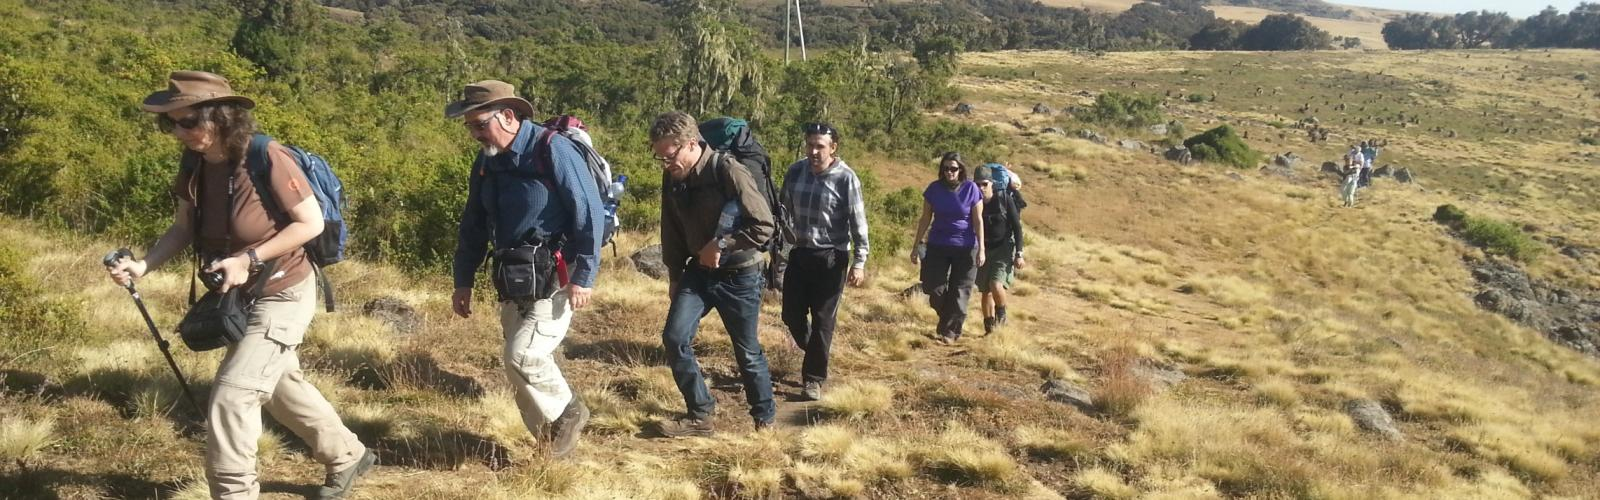 Photo of Trekking in Ethiopia